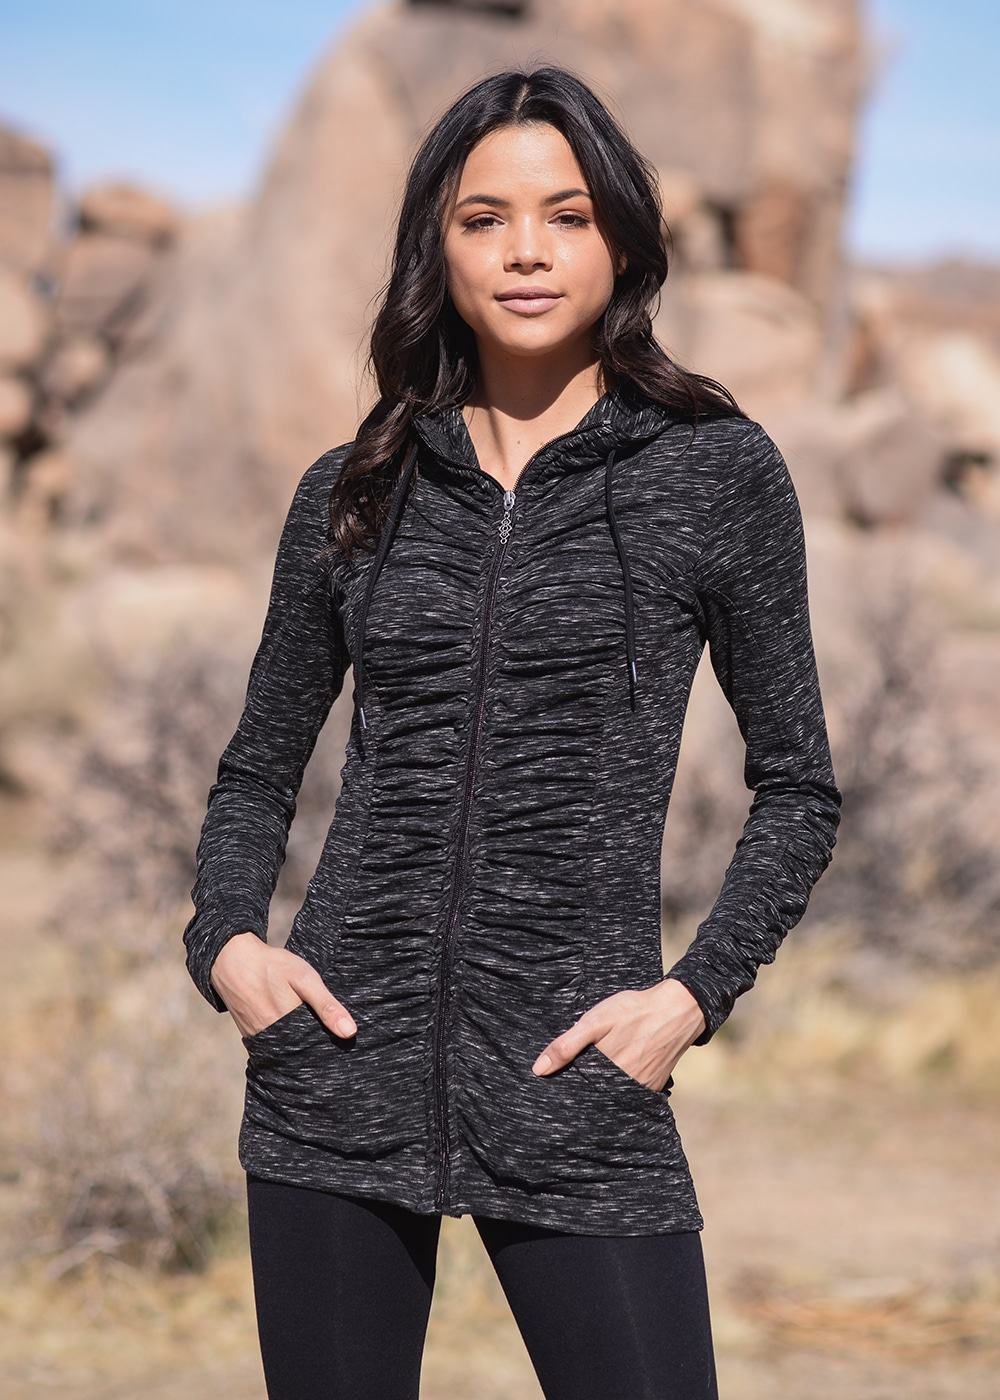 Bamboo and Organic Cotton Thrive Tunic in Black Fleck by Nomads Hemp Wear